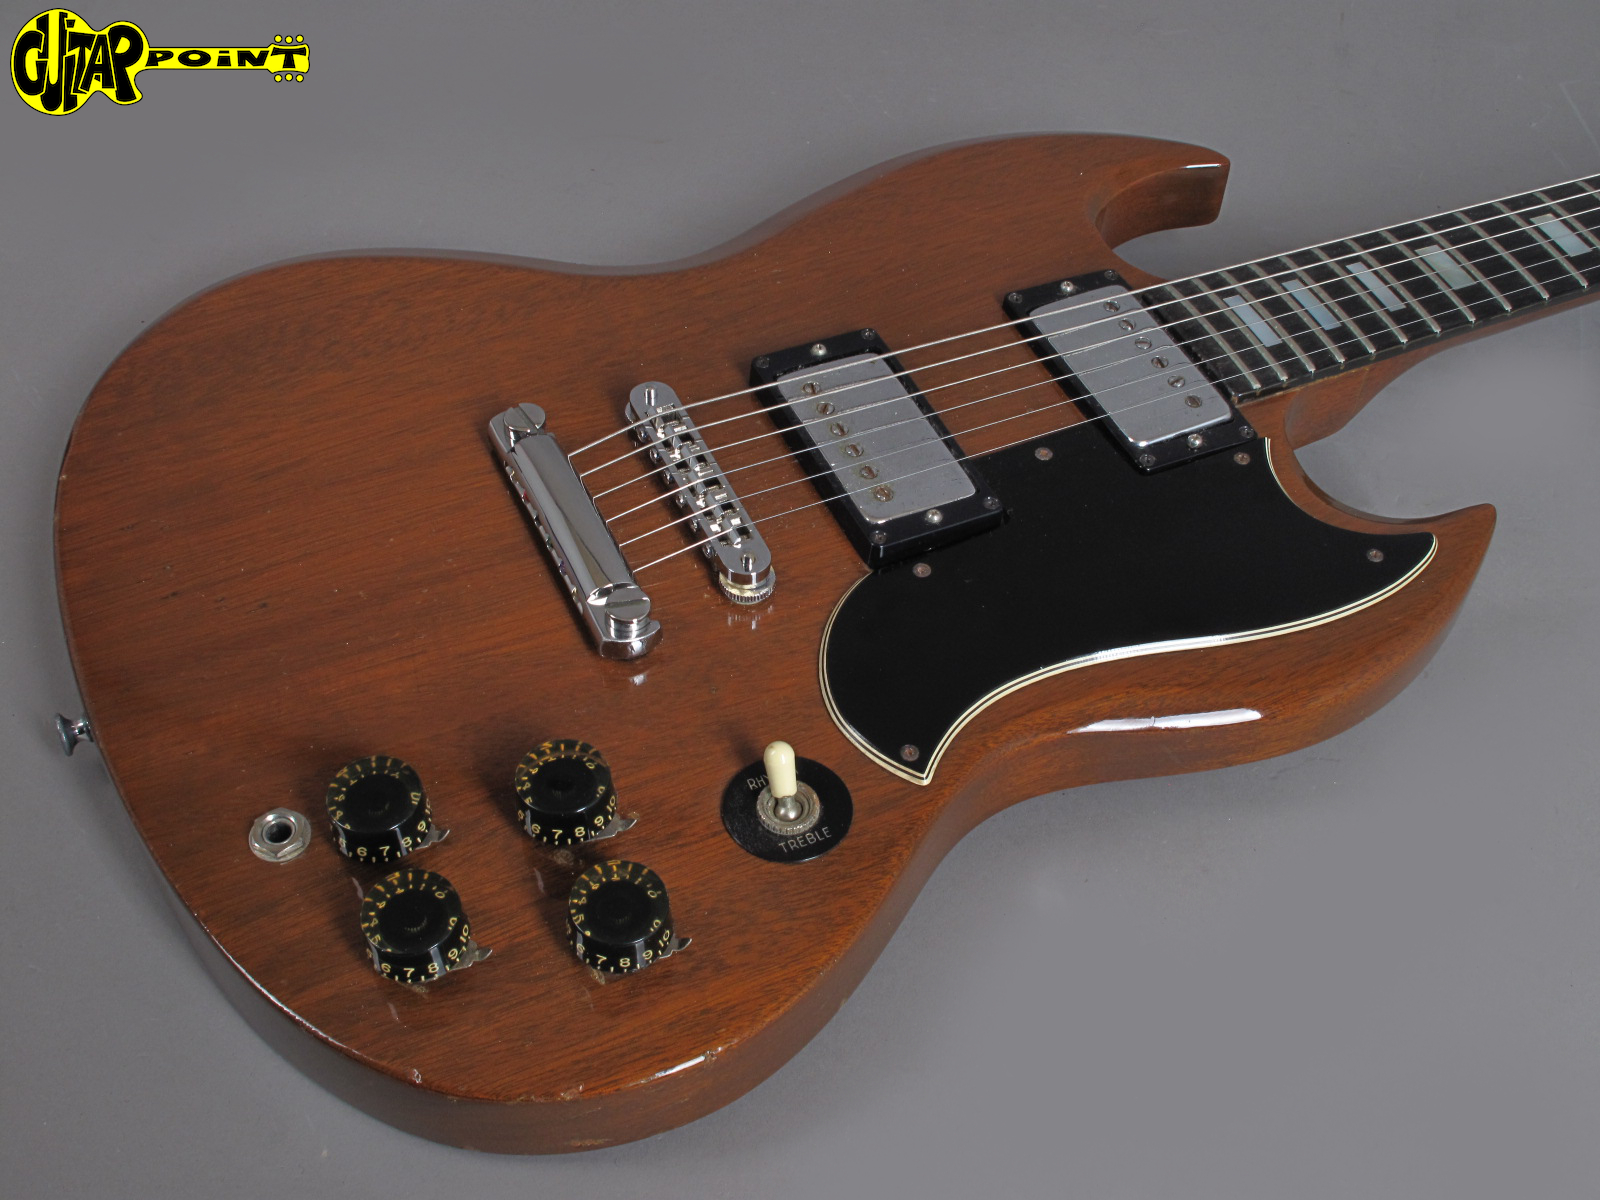 https://guitarpoint.de/app/uploads/products/1974-gibson-sg-standard-walnut/Gibson74SG102051_7.jpg